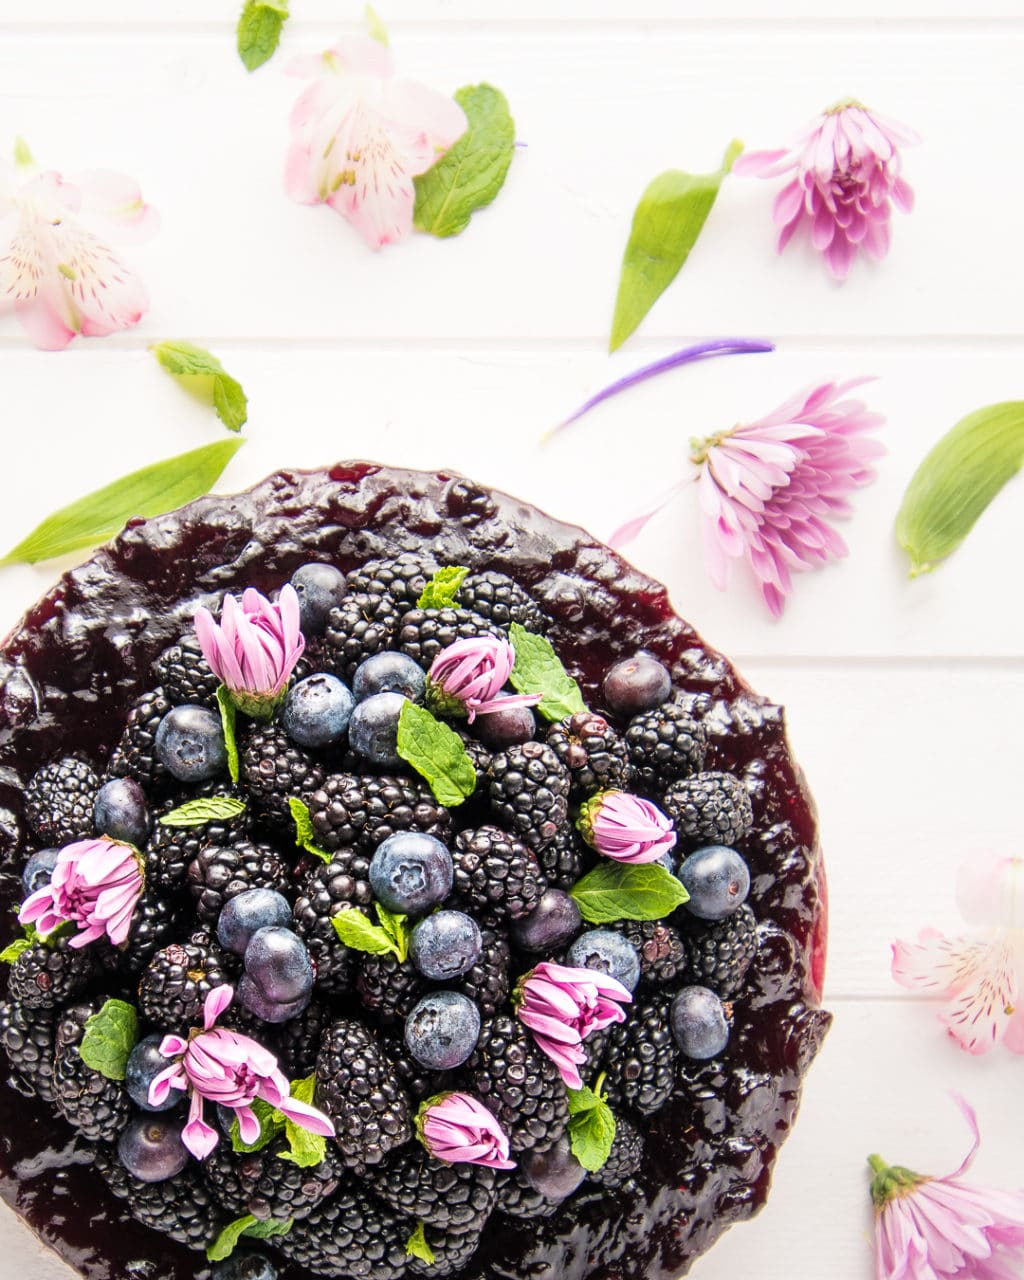 Overhead photograph of a berry cheesecake with sprigs of mint and pink flowers